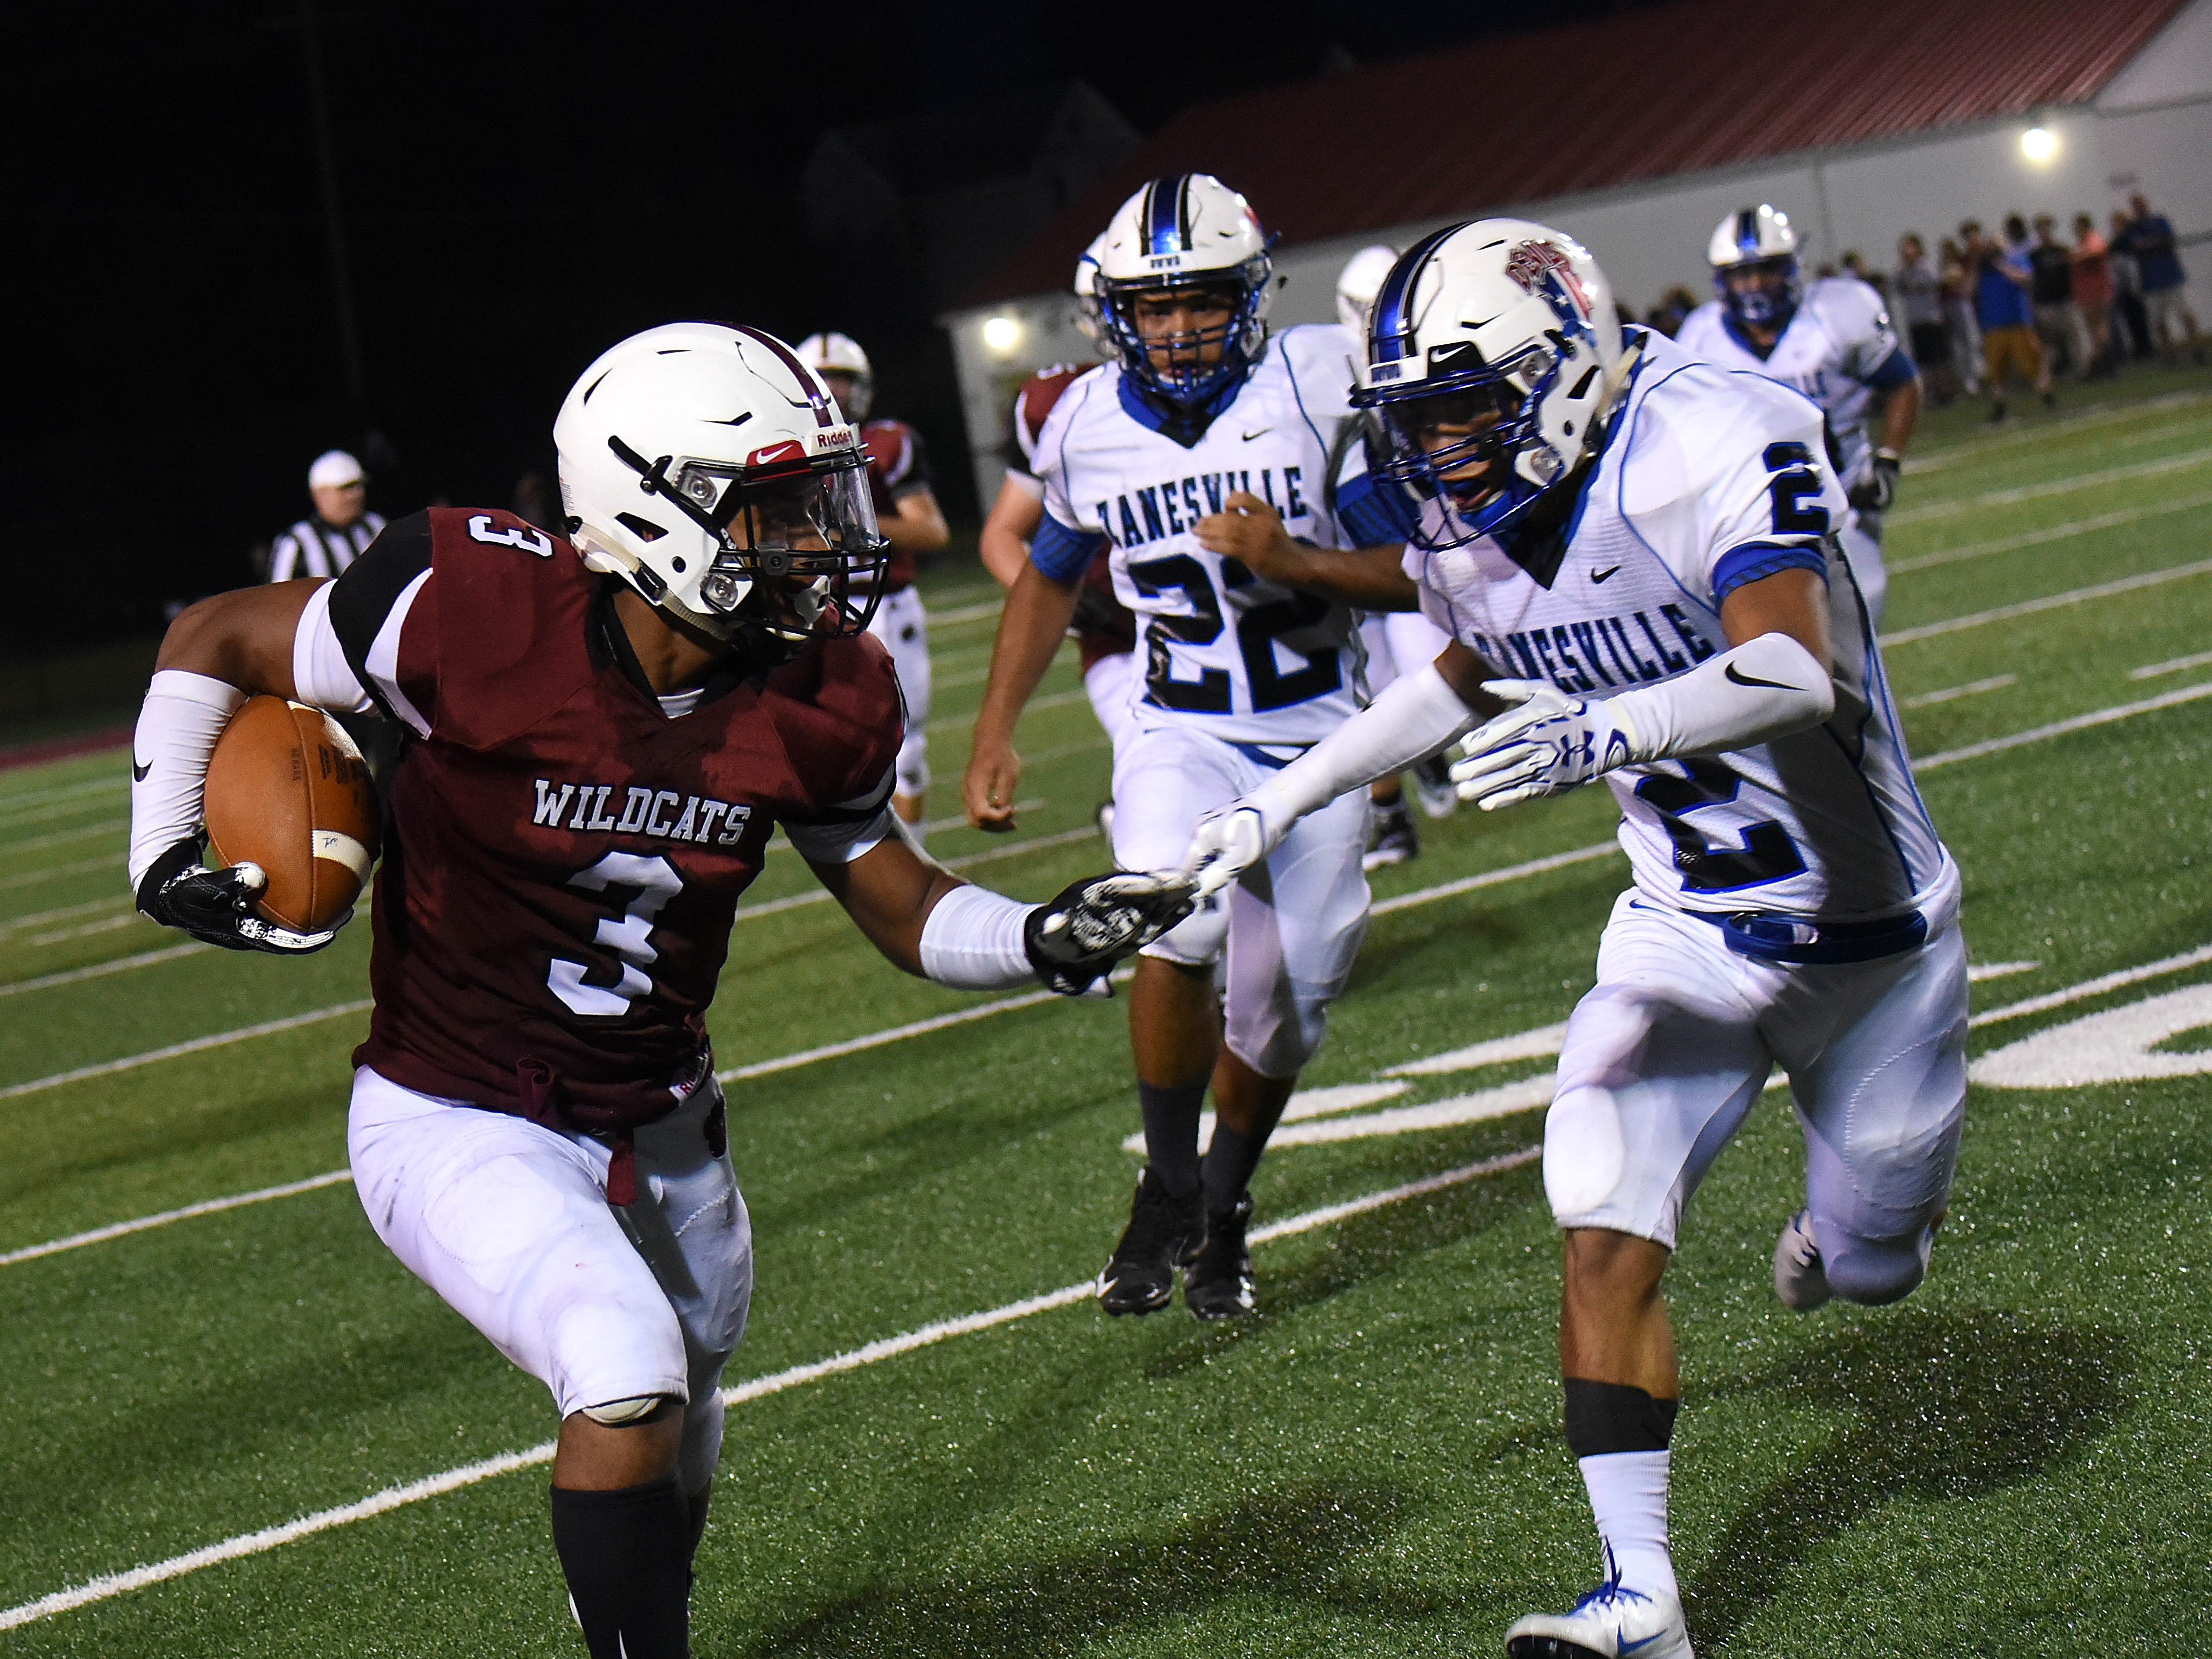 Newark senior running back Davian Williams tries to dodge Zanesville defender junior Zarek Morgan during Friday night's season opening game at White Field in Newark. The Blue Devils defeated the Wildcats 32-27.